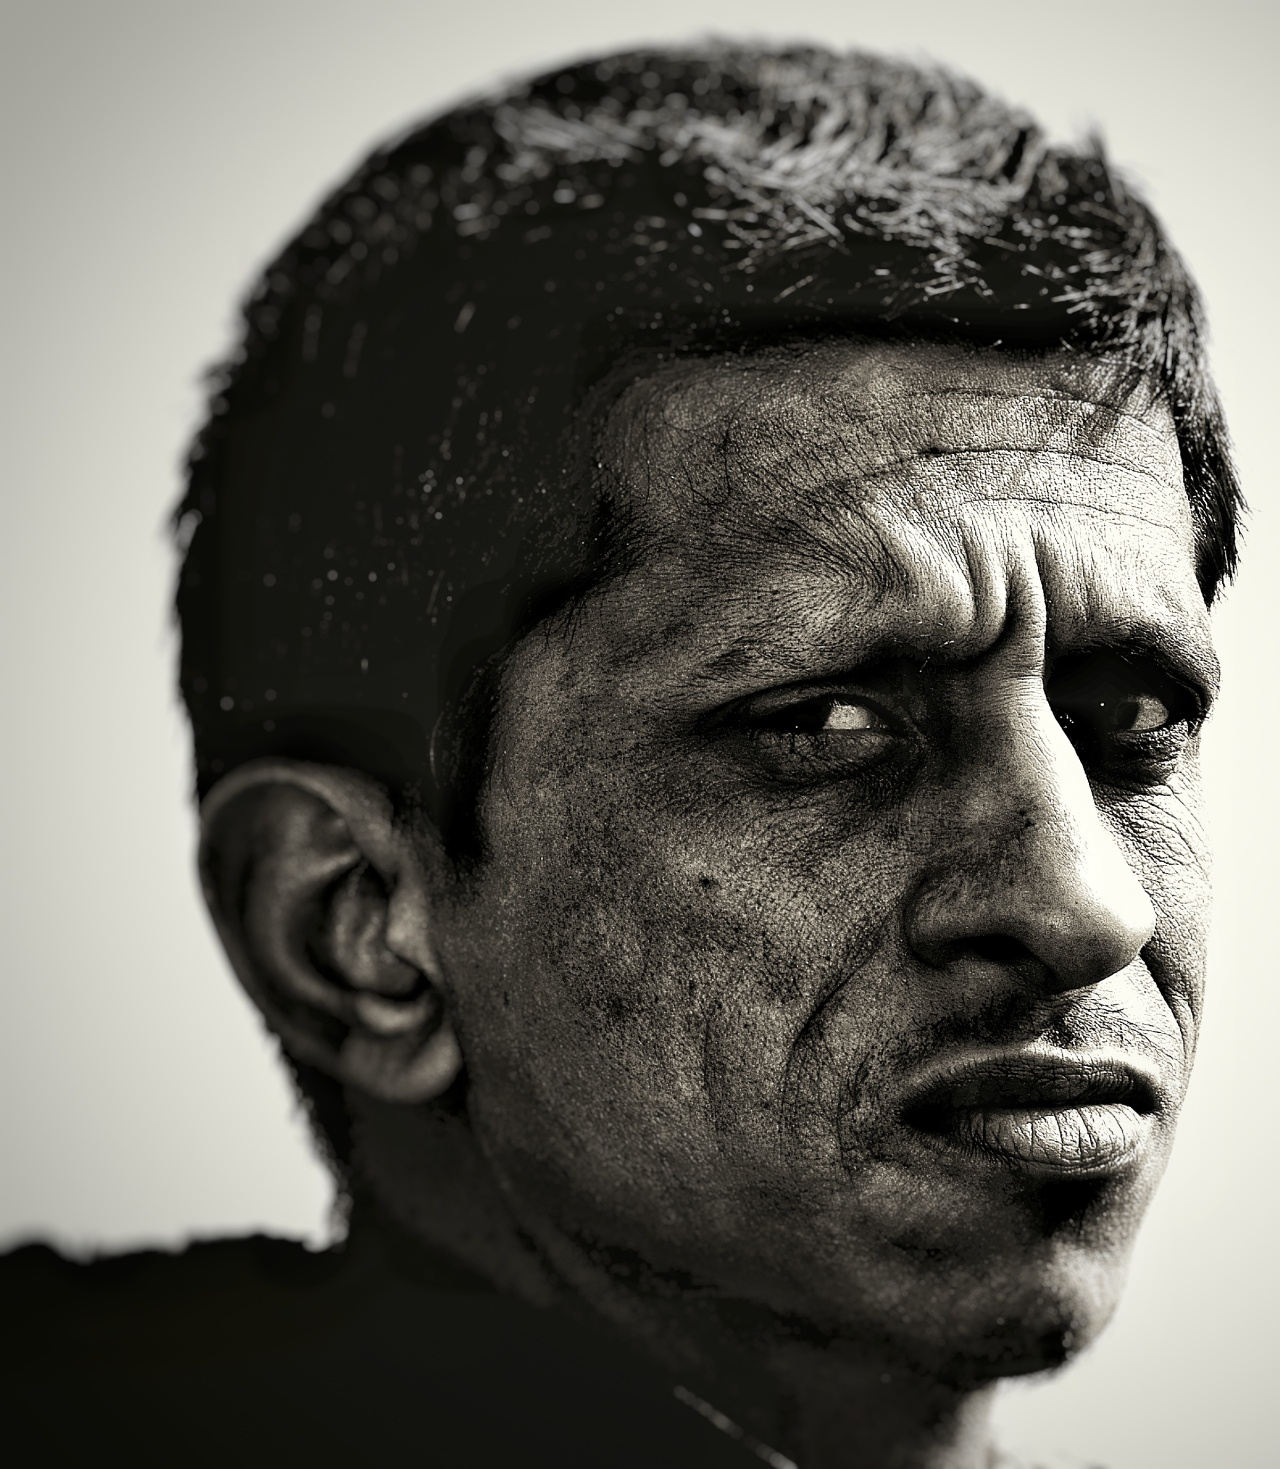 Sandeep- Faces in Disguise (140 mm Portrait Experiment)